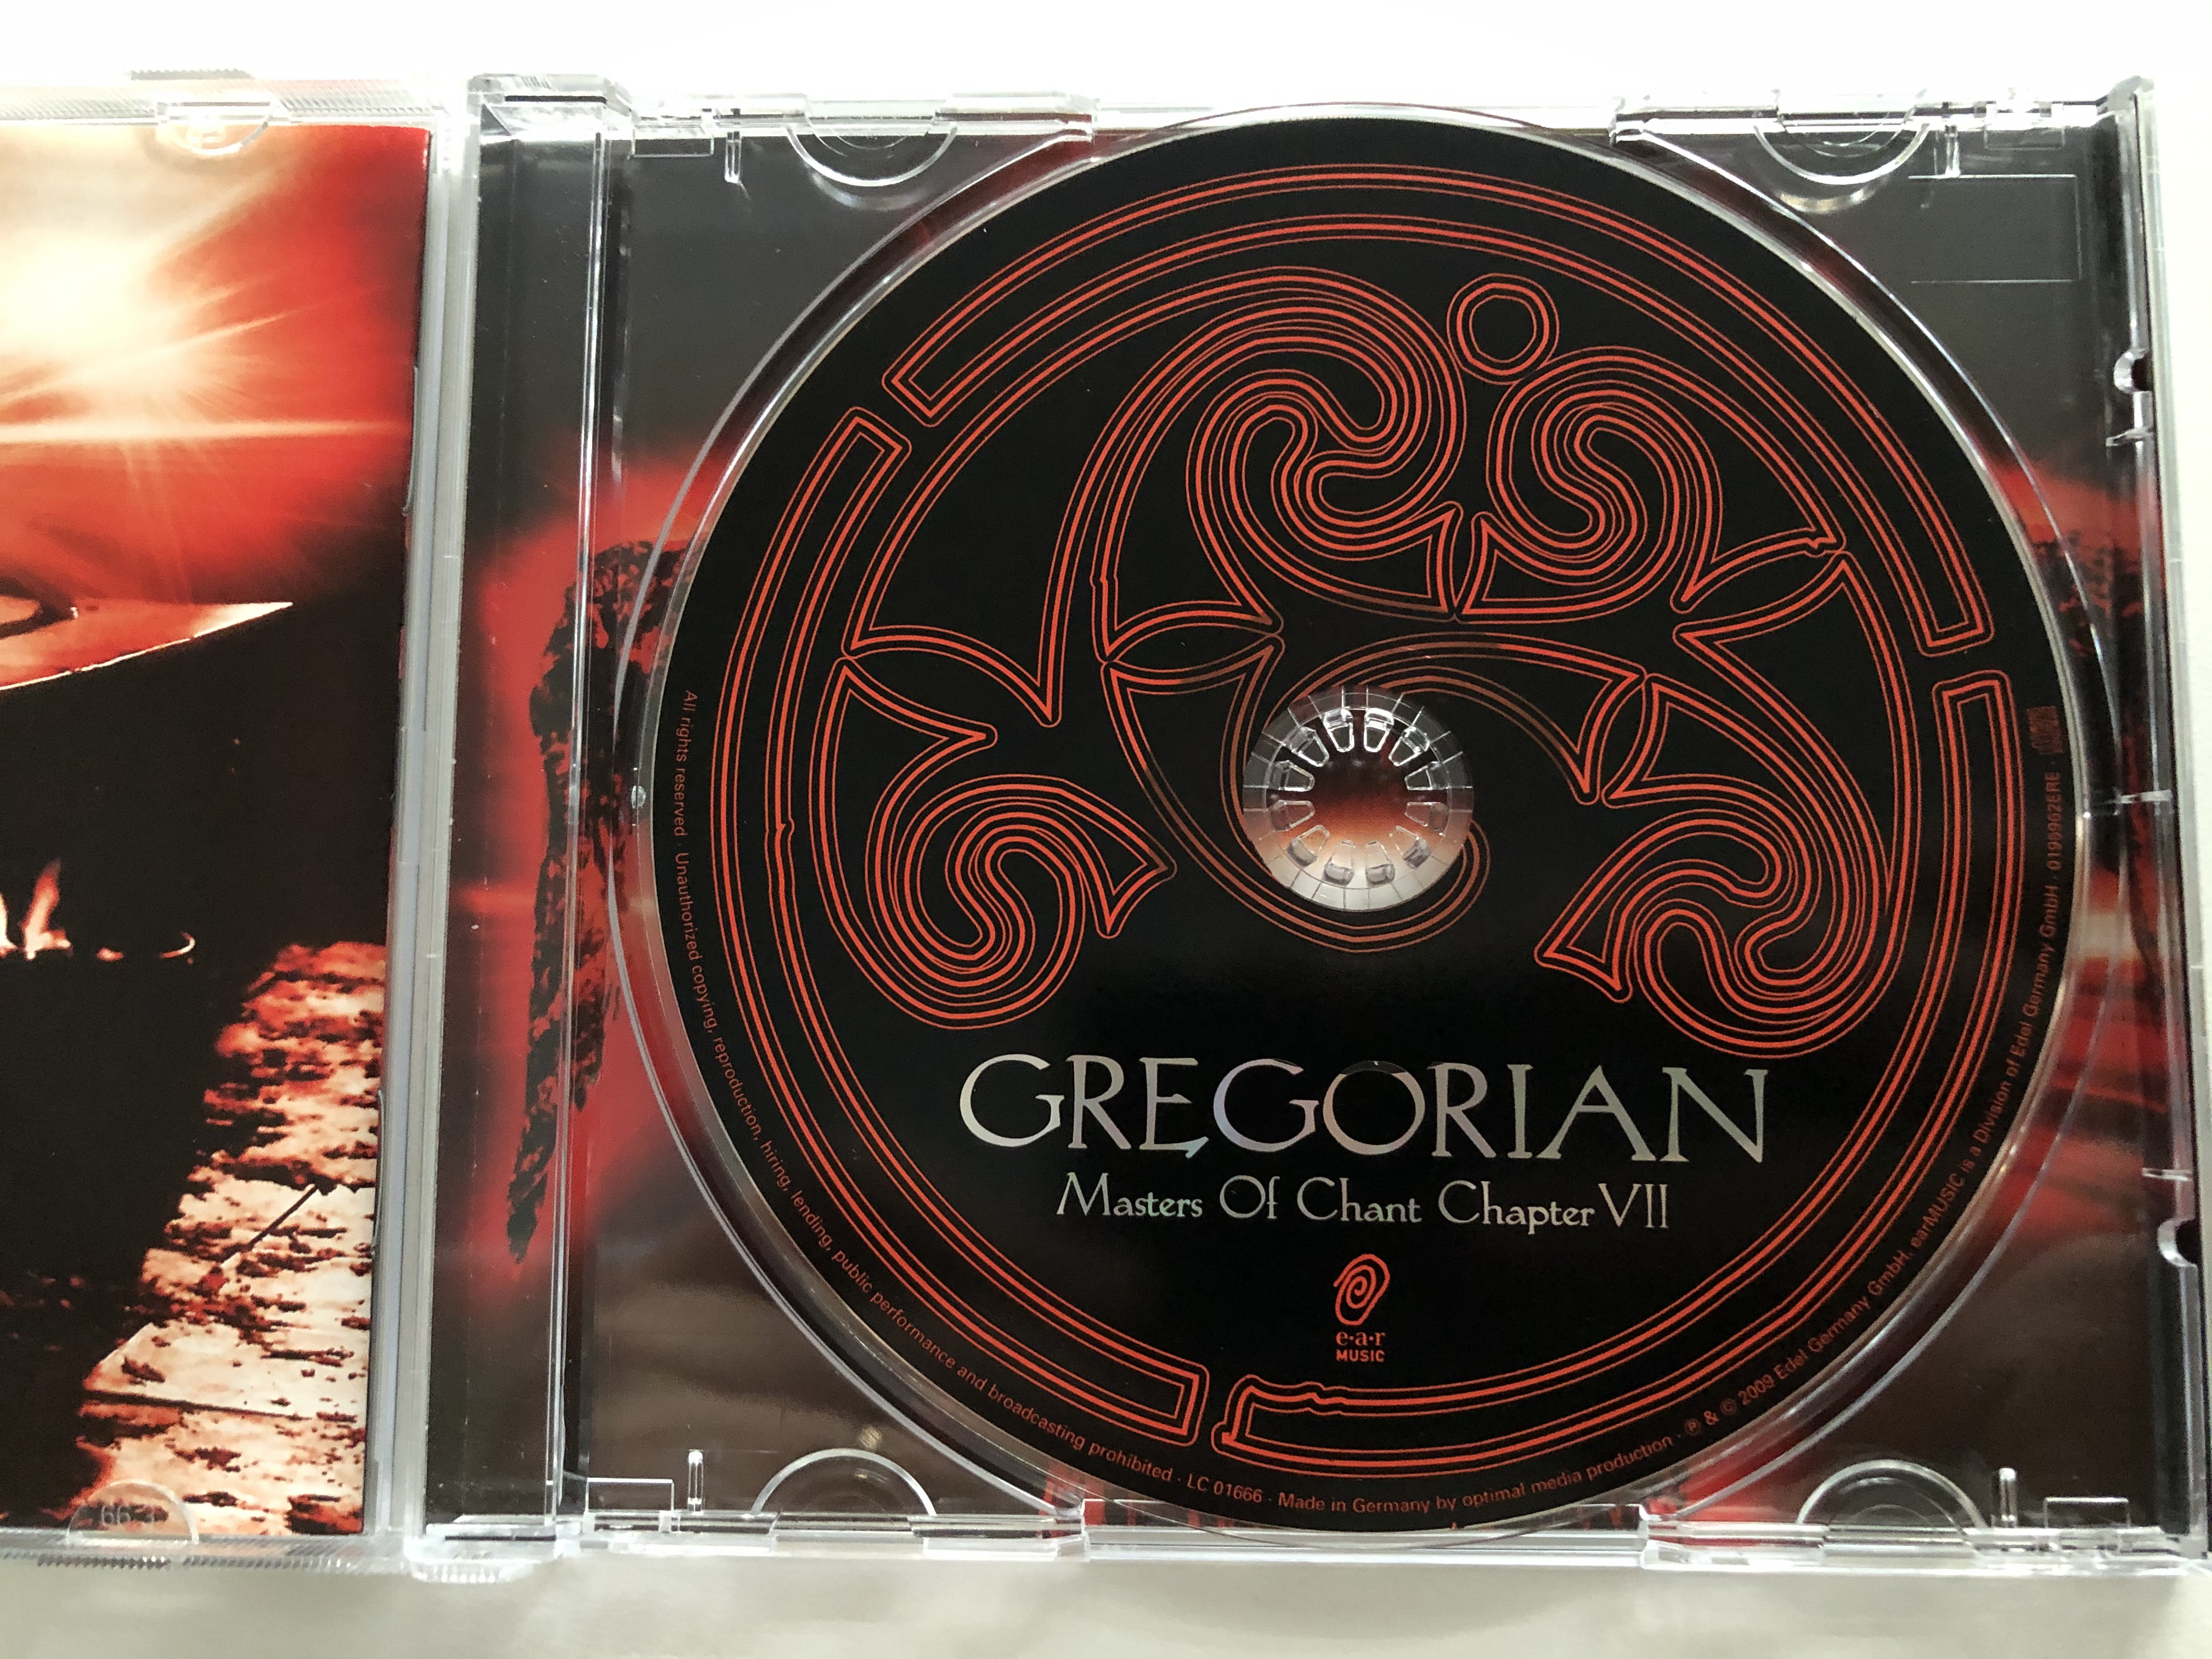 gregorian-masters-of-chant-chapter-vii-ear-music-audio-cd-2009-0195962ere-8-.jpg